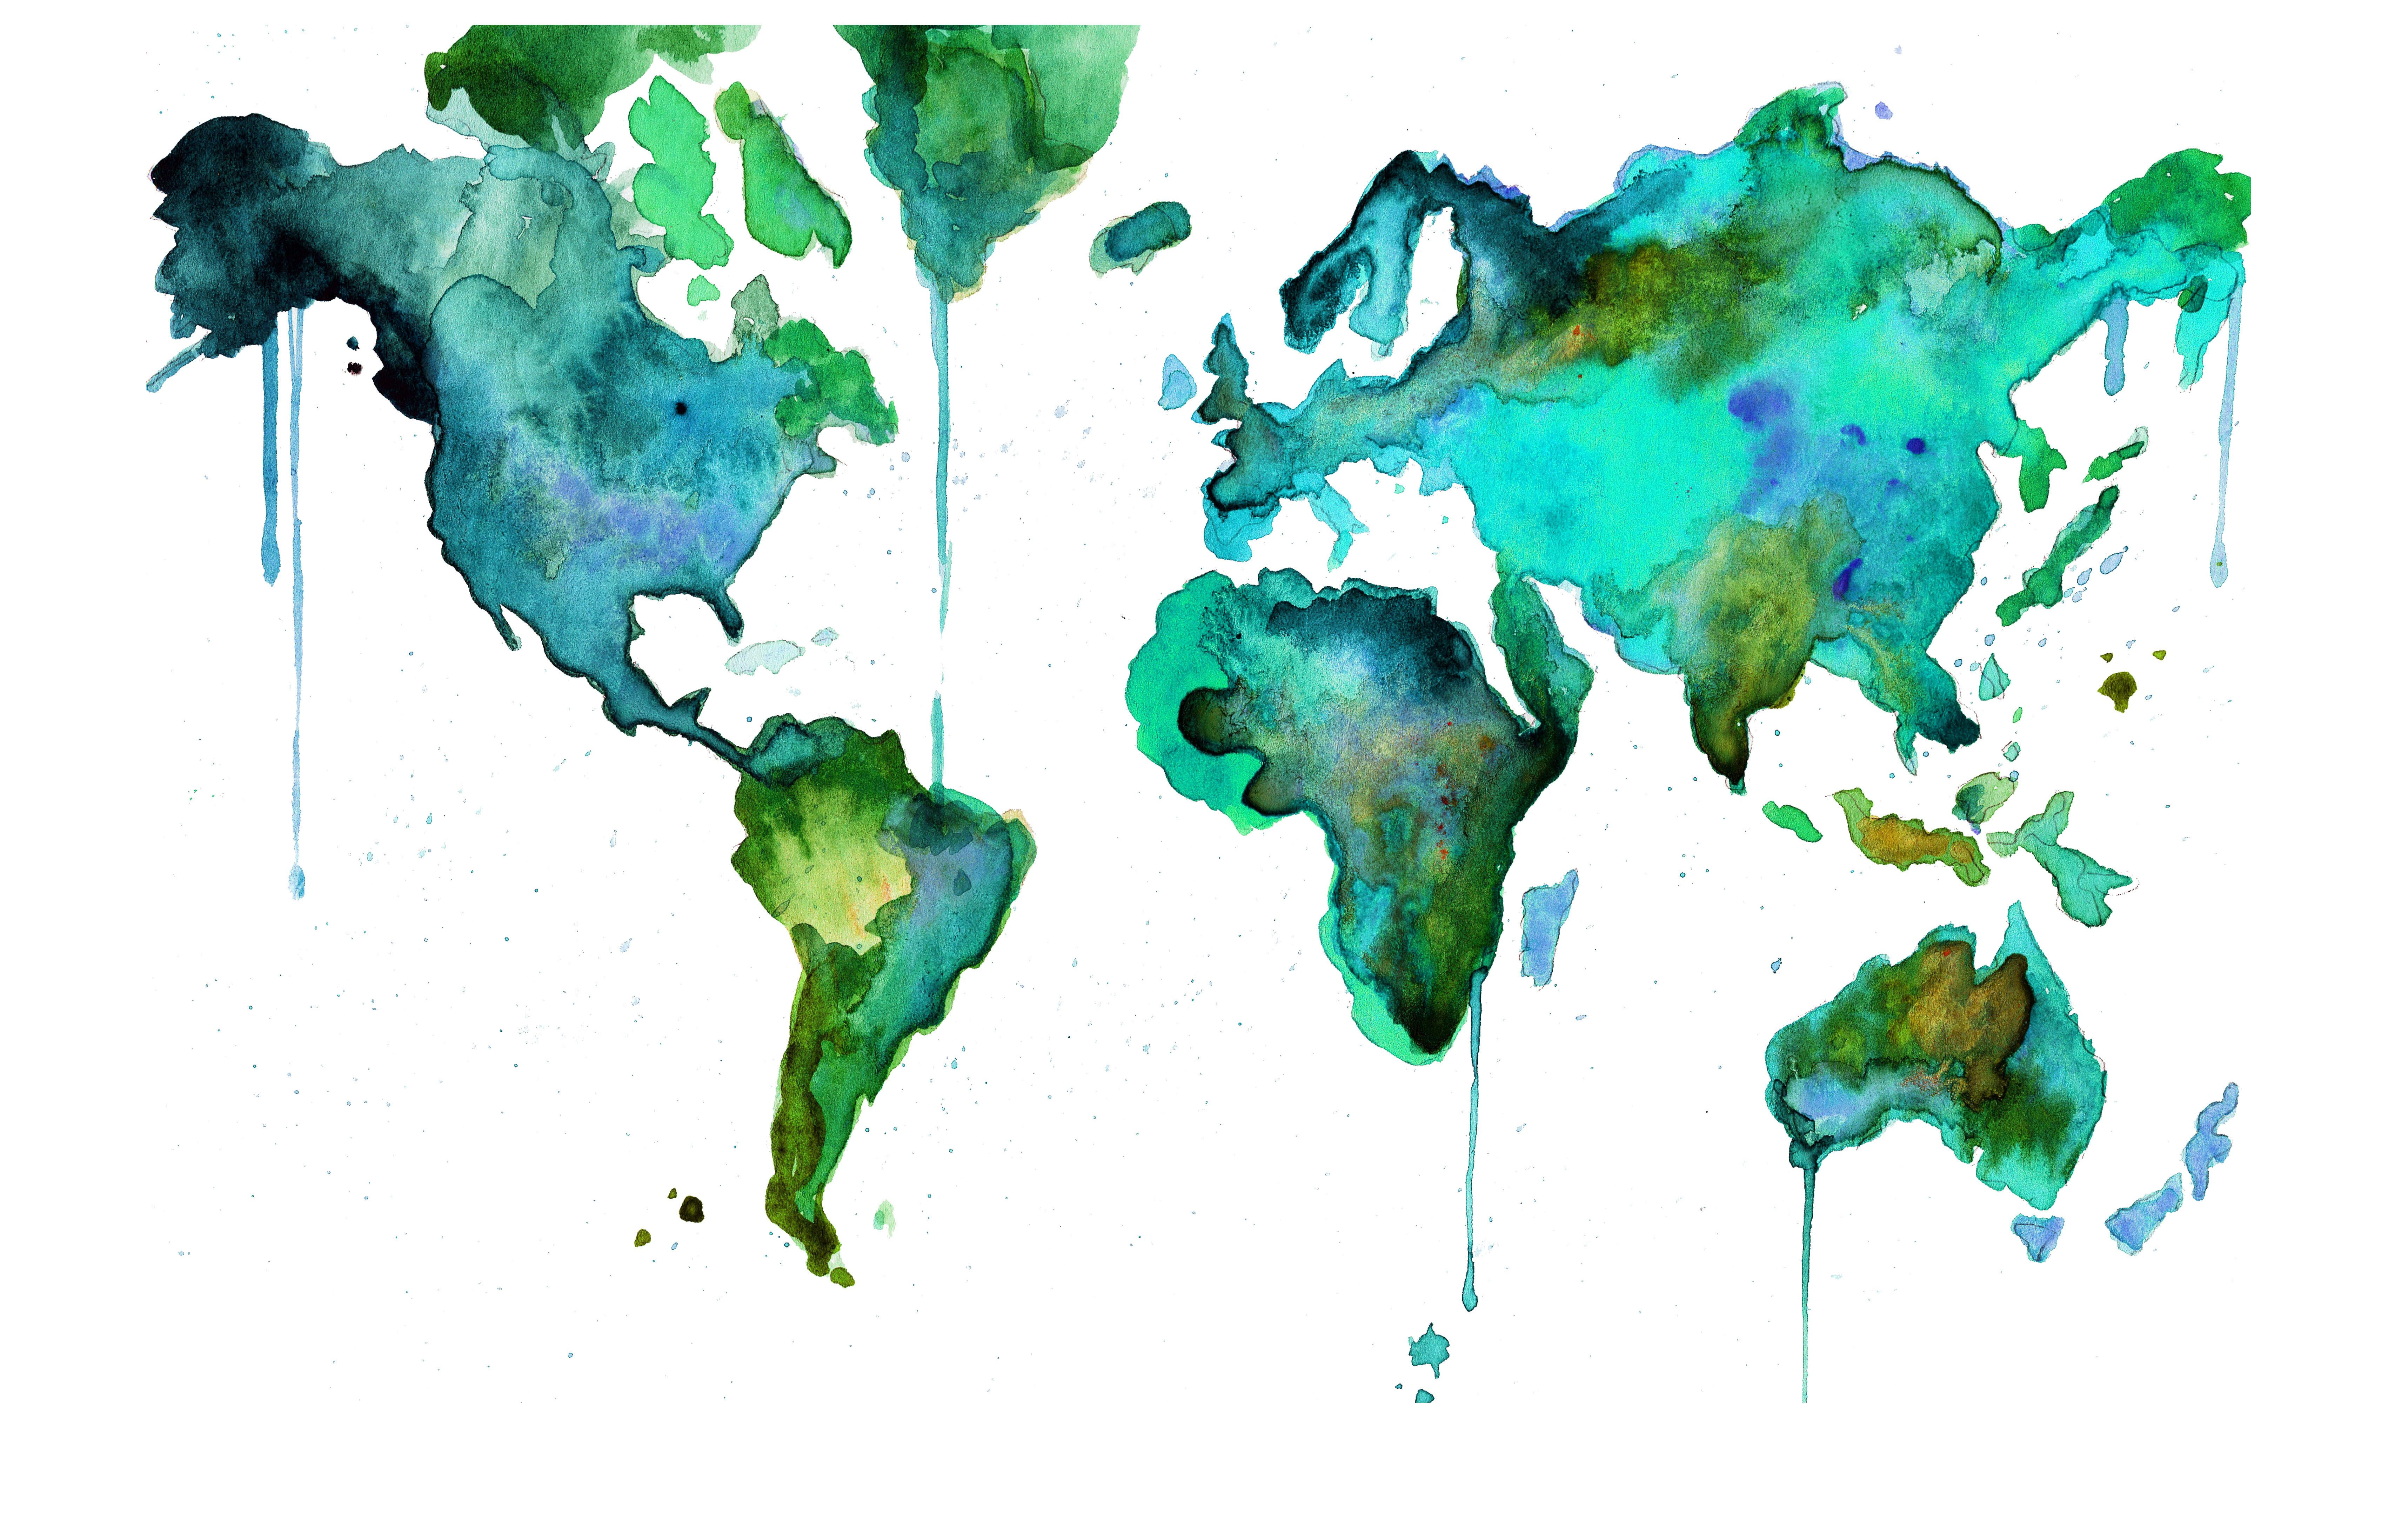 World maps art diagrams free printable images world maps sciox Choice Image